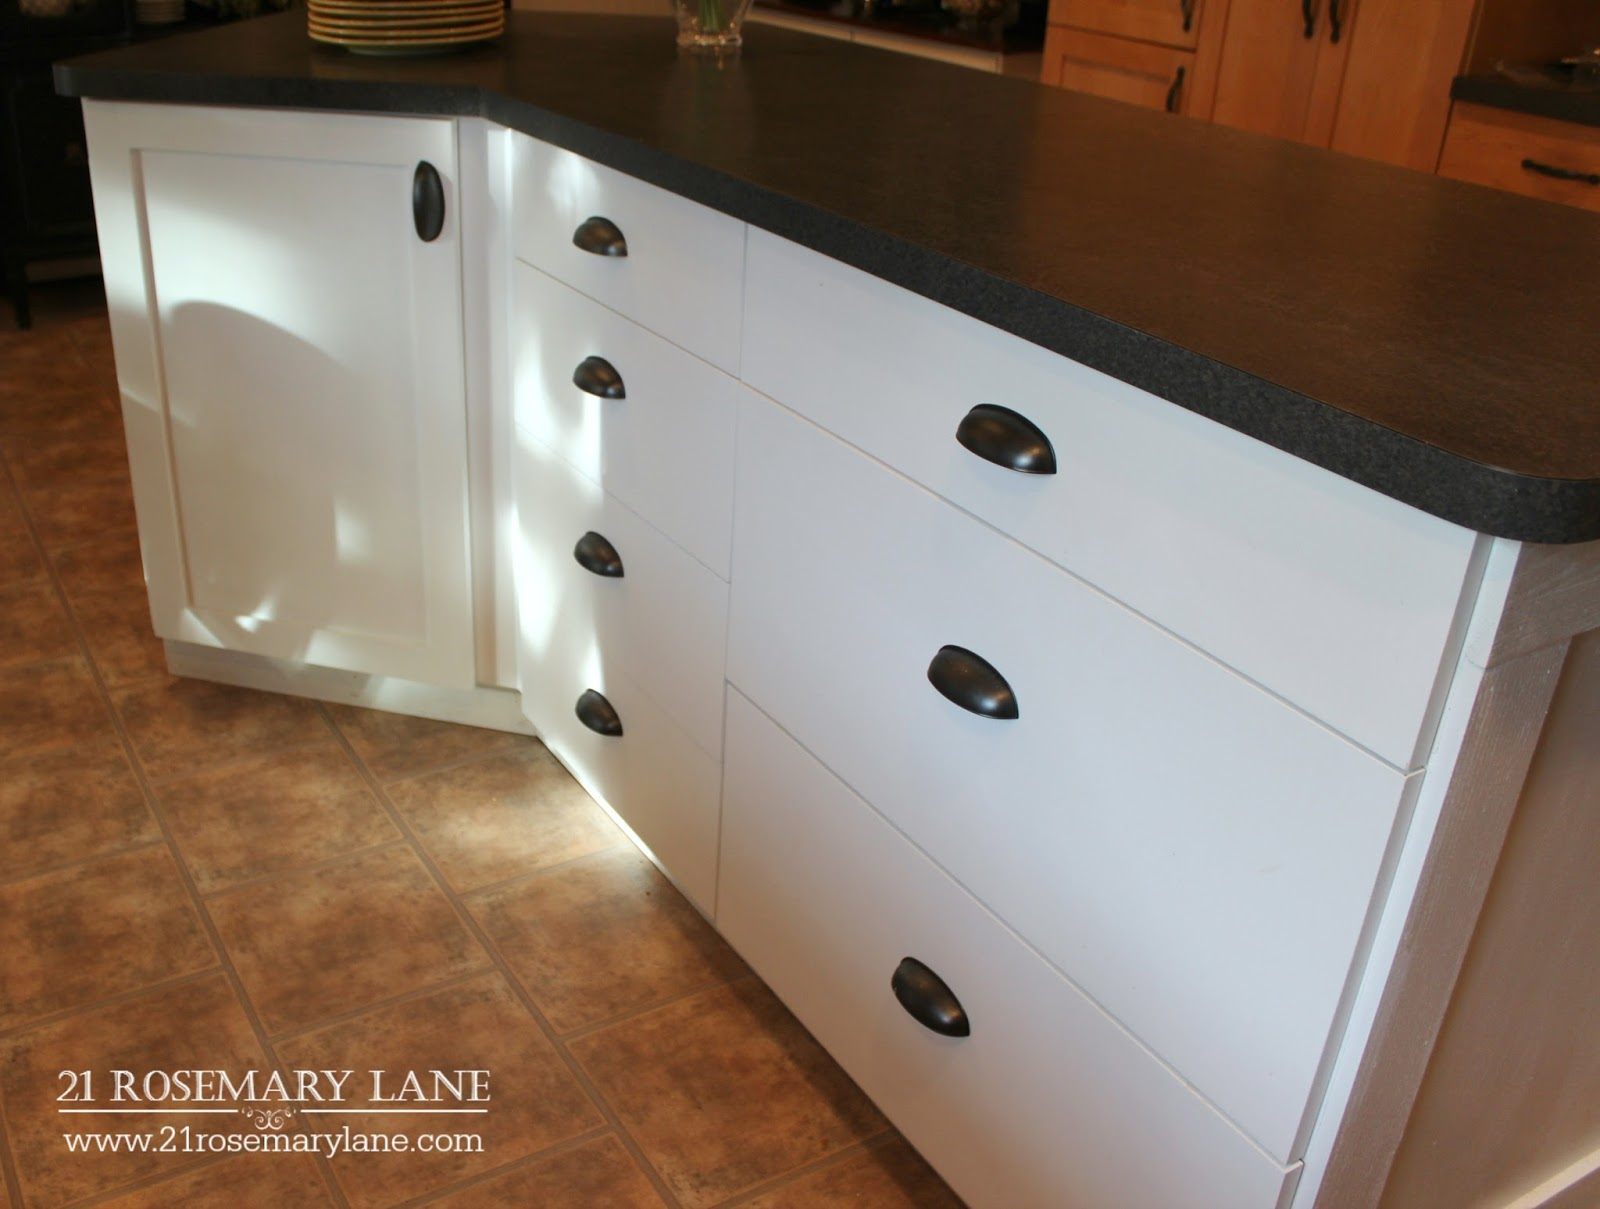 21 Rosemary Lane Board & Batten Kitchen Island Makeover